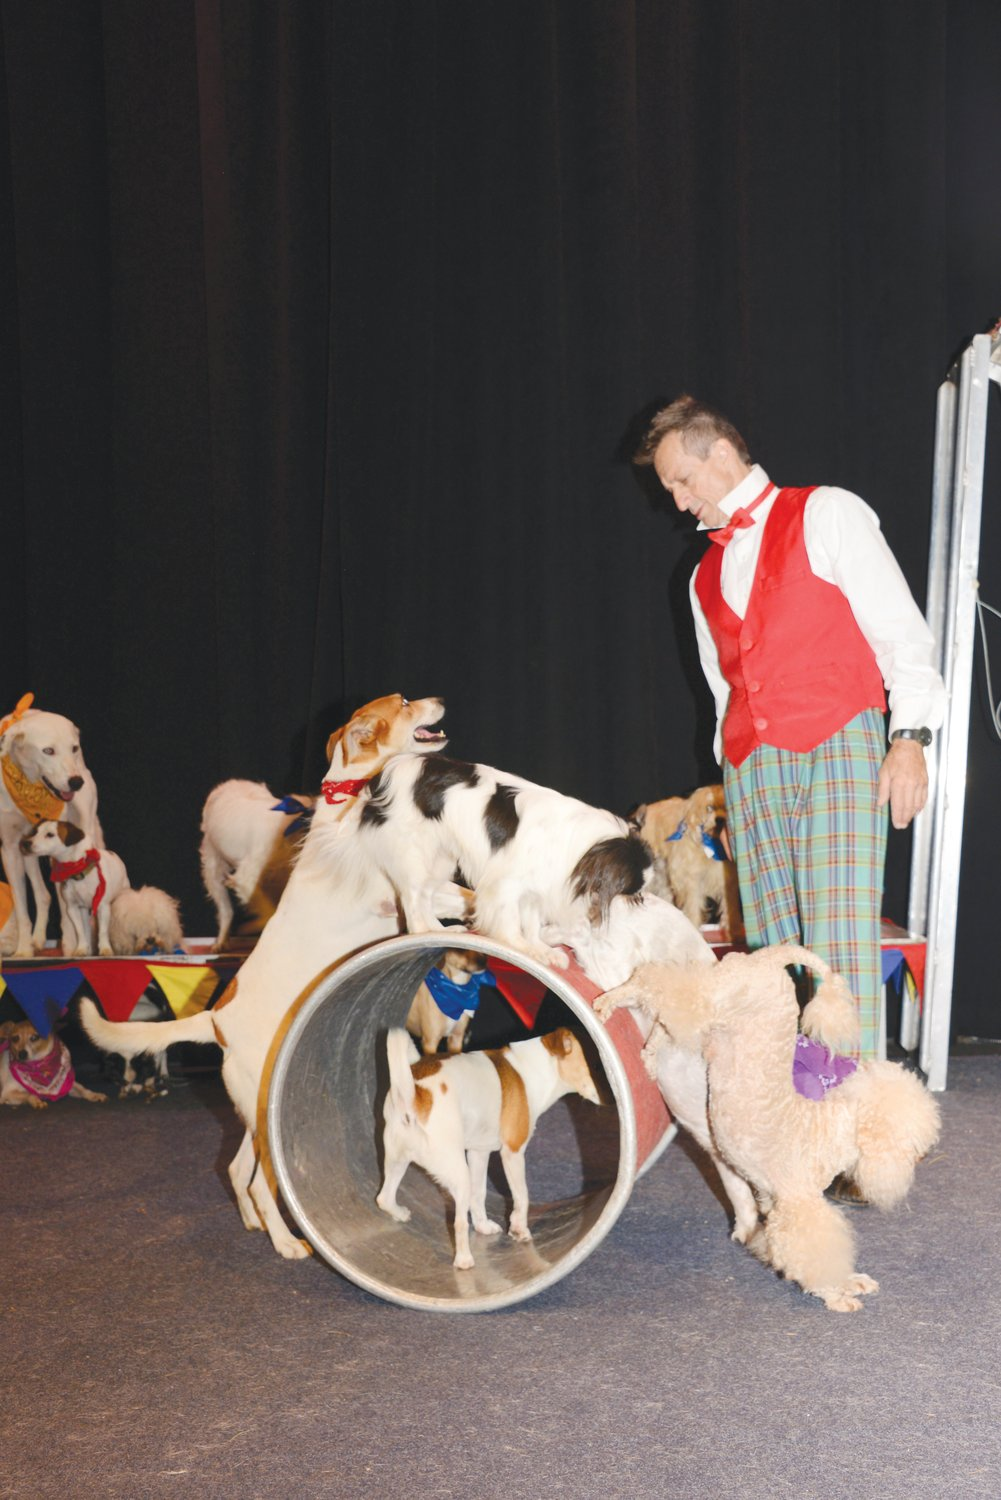 Funny K9 show coming to the Kirby